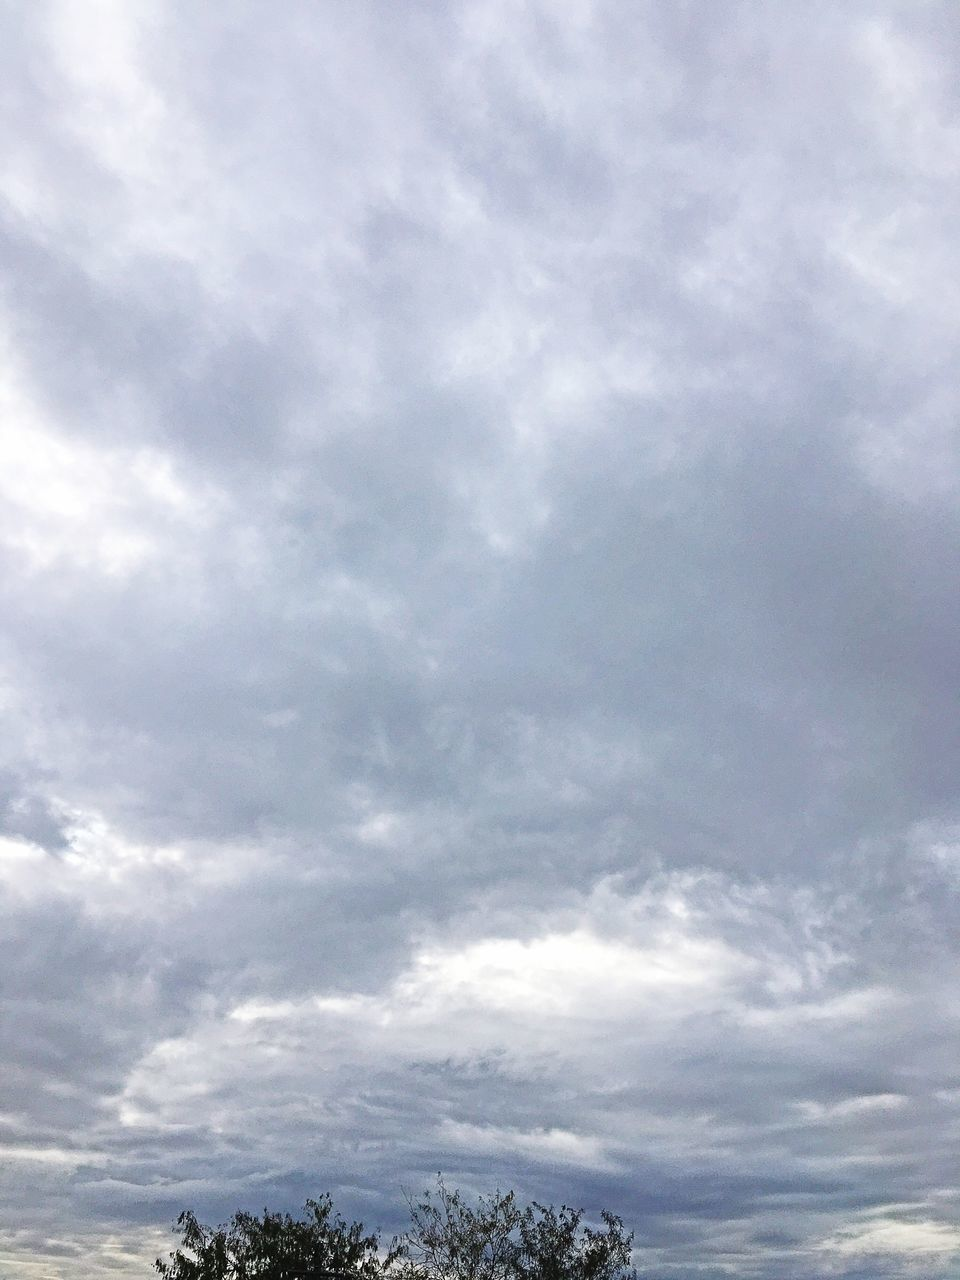 sky, cloud - sky, beauty in nature, nature, no people, low angle view, scenics, day, outdoors, tranquility